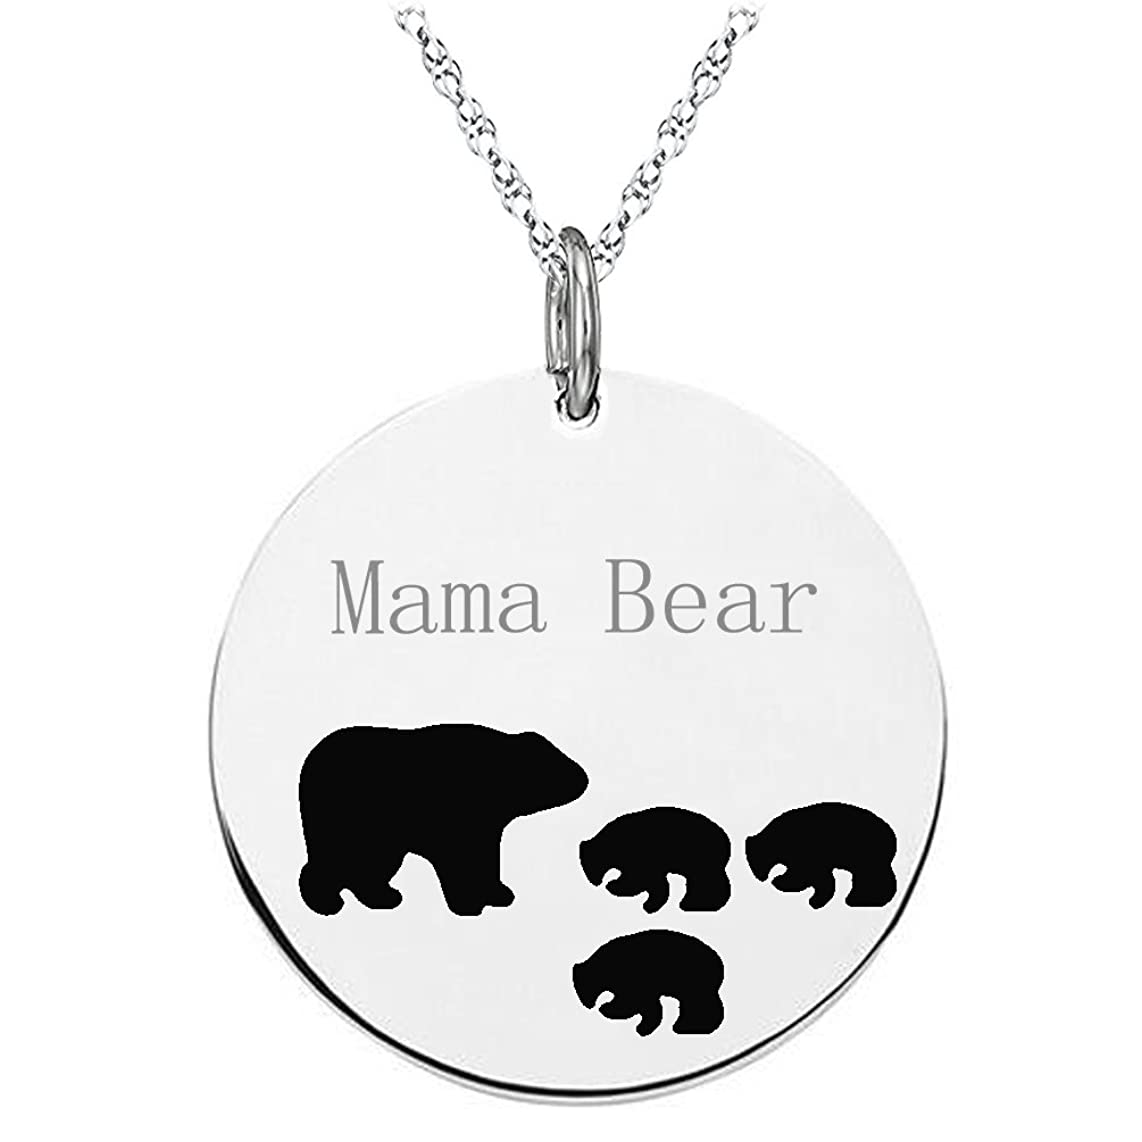 Mama Bear Necklace with 3 Cubs Sterling Silver Round Engraved Pendant for Women Girl Mom Christmas Gift